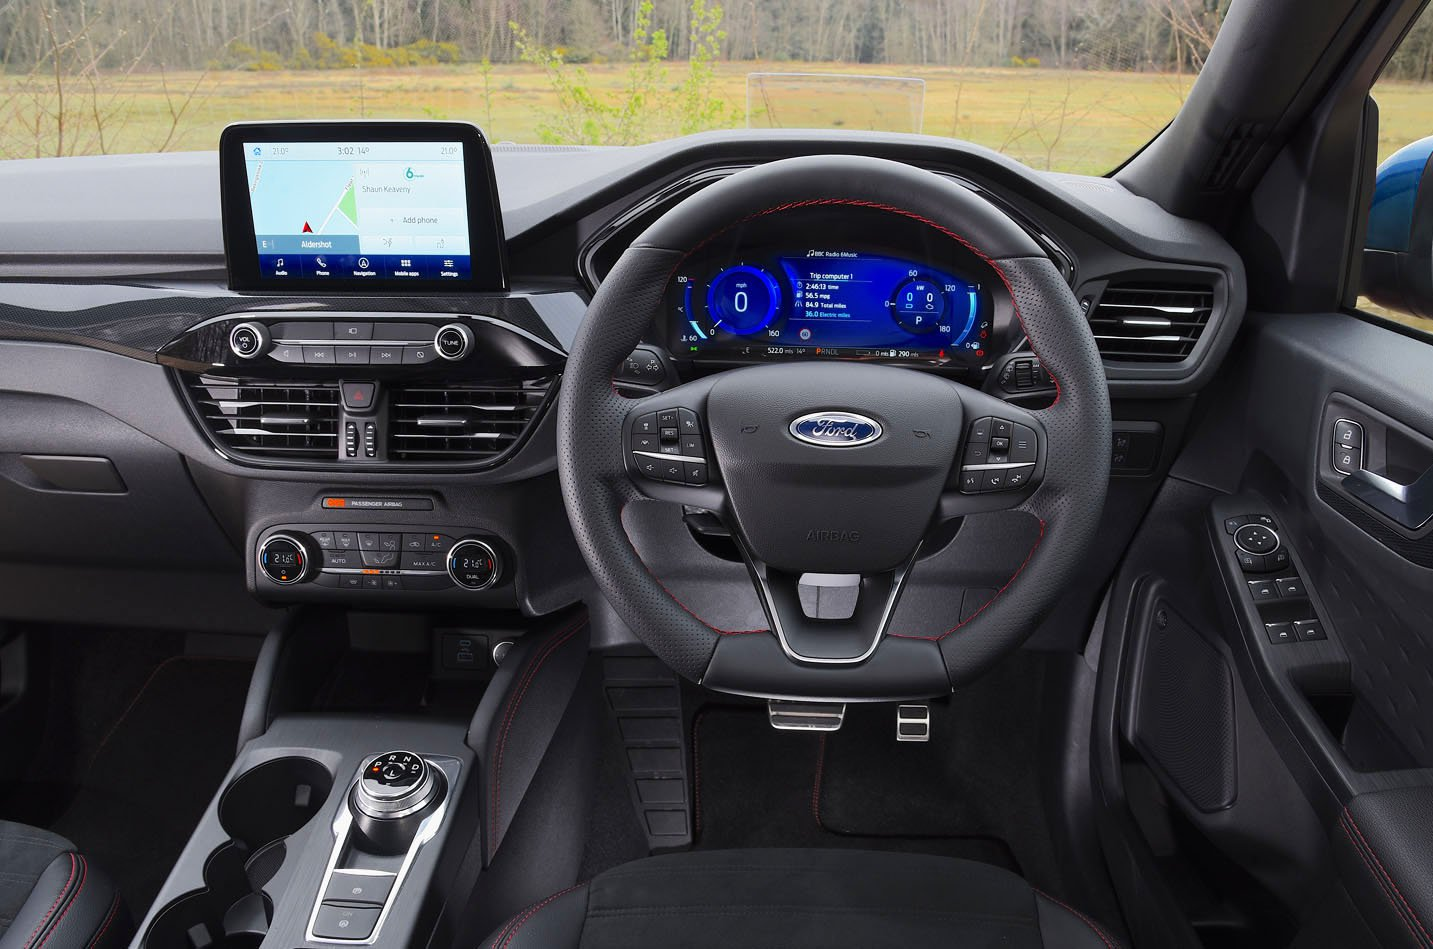 Ford Kuga PHEV dashboard